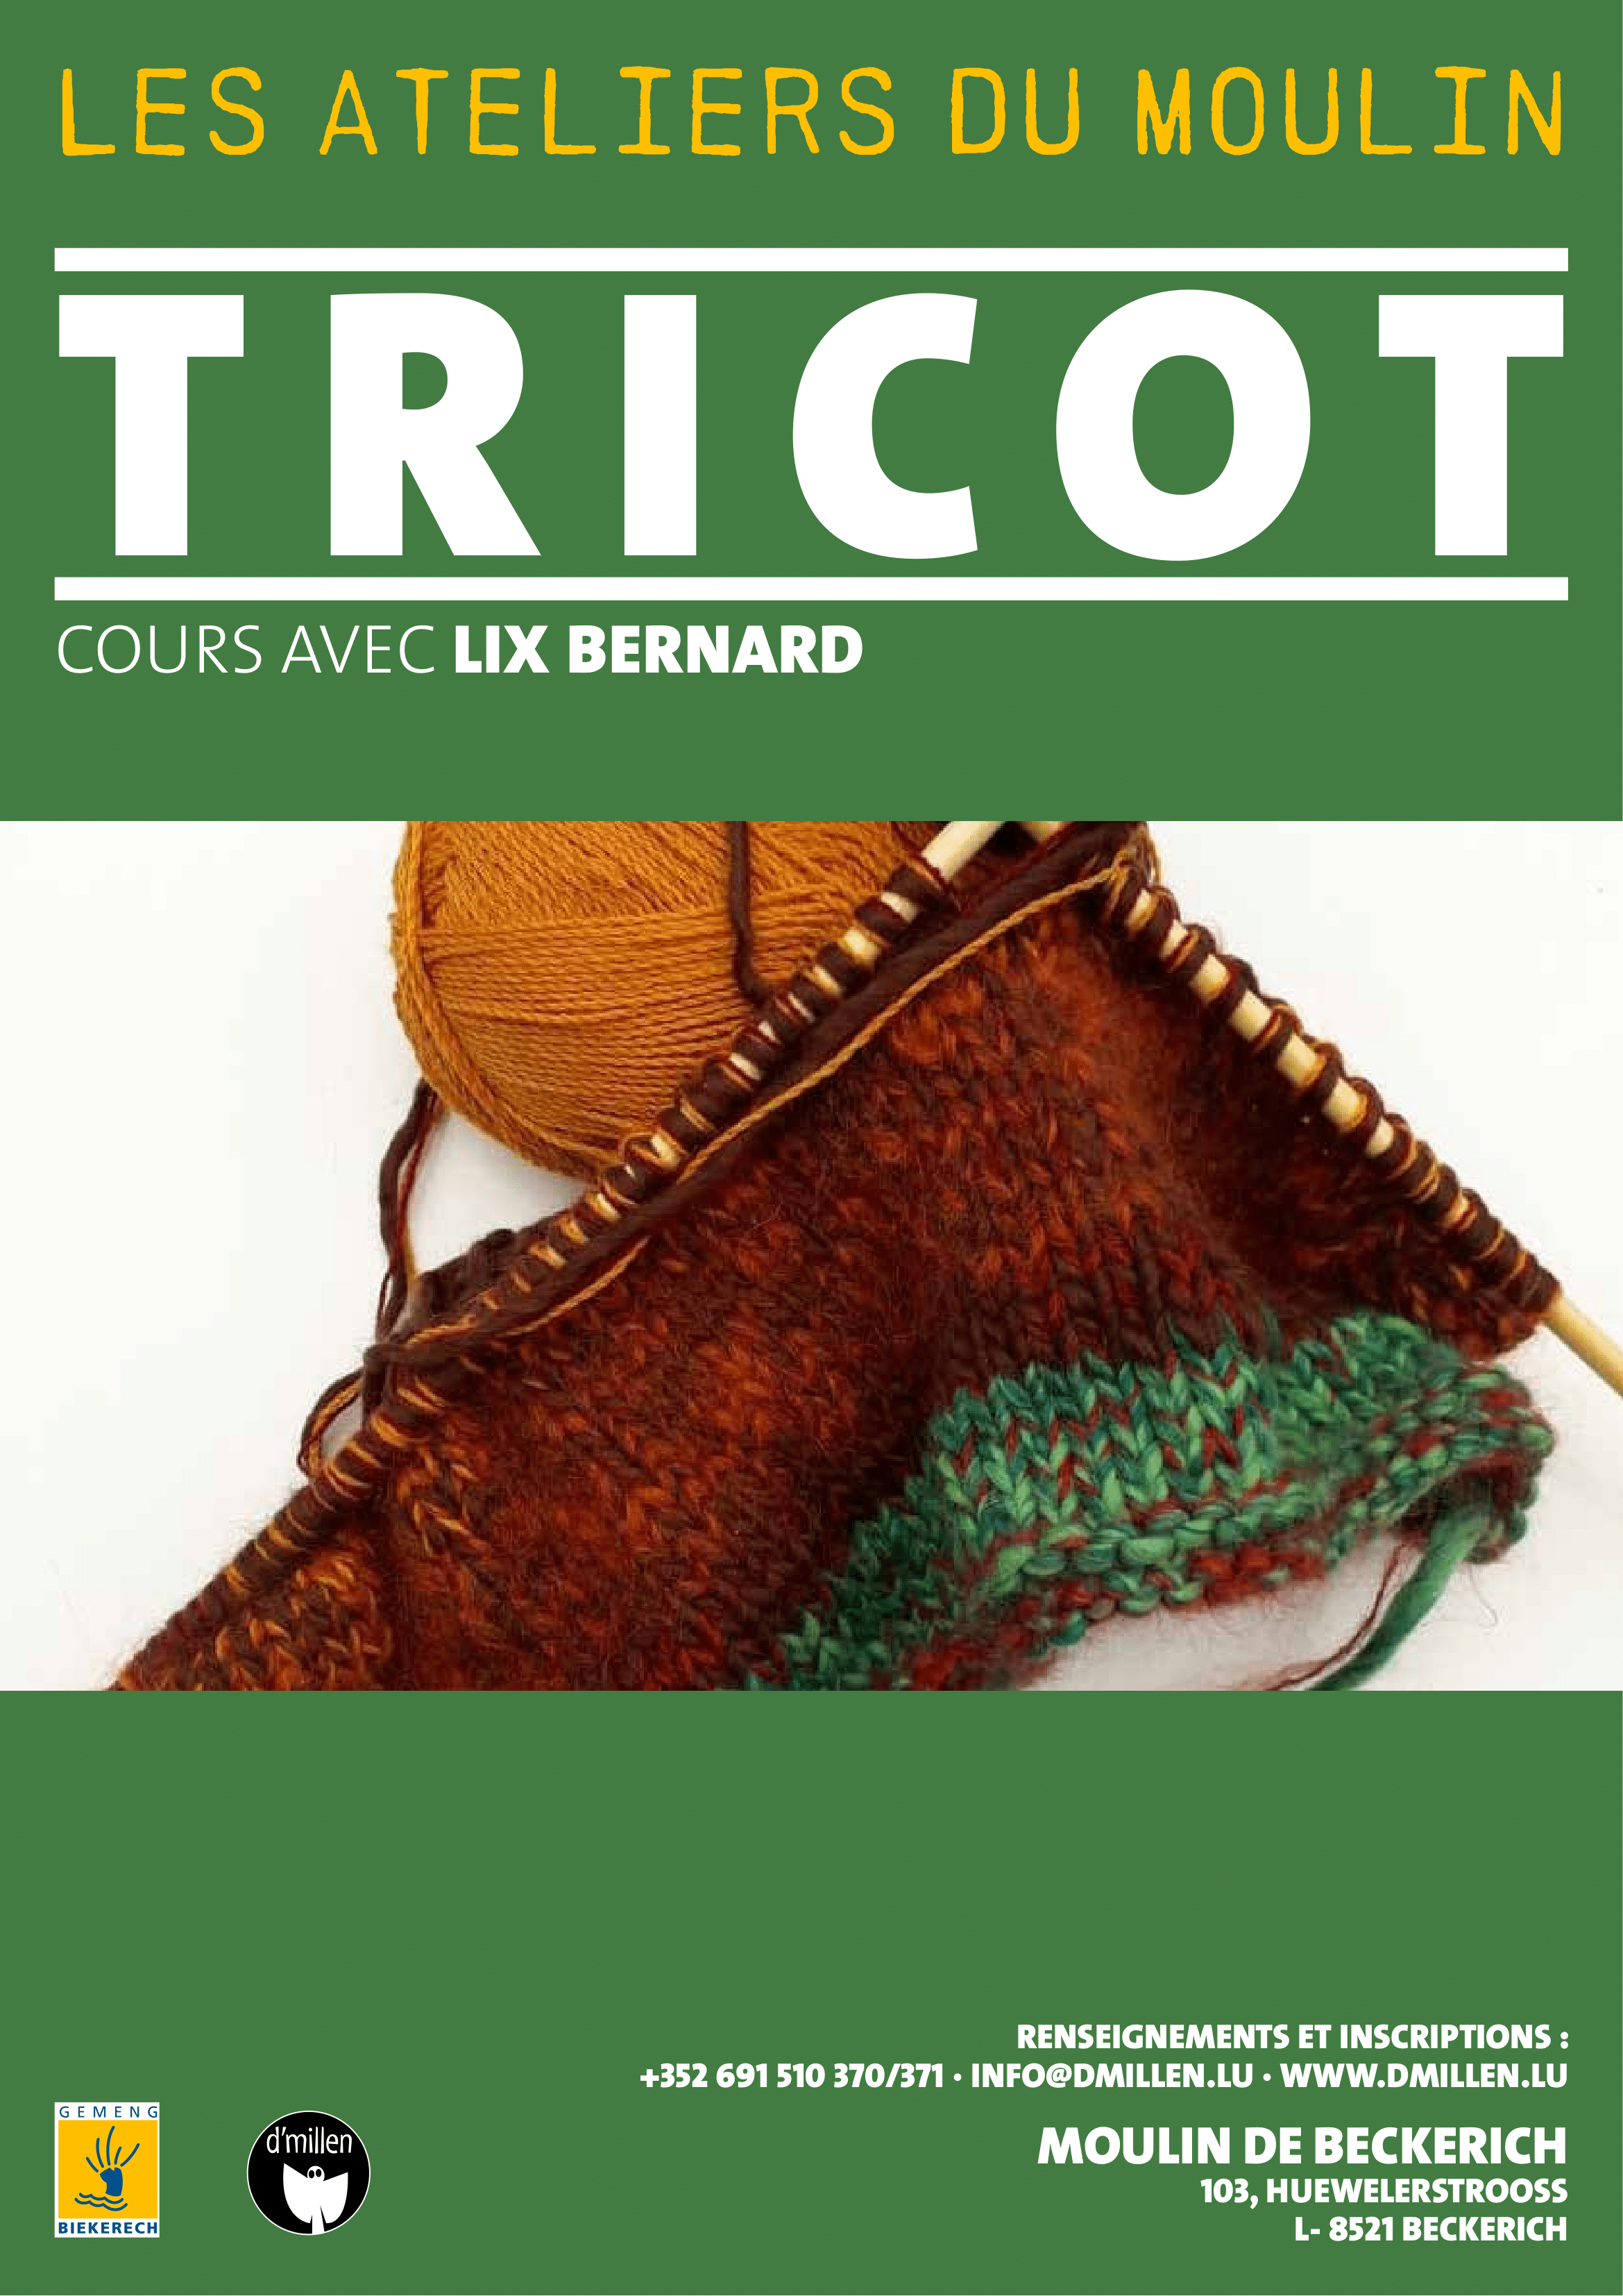 07 tricot-aff-bd-1.png